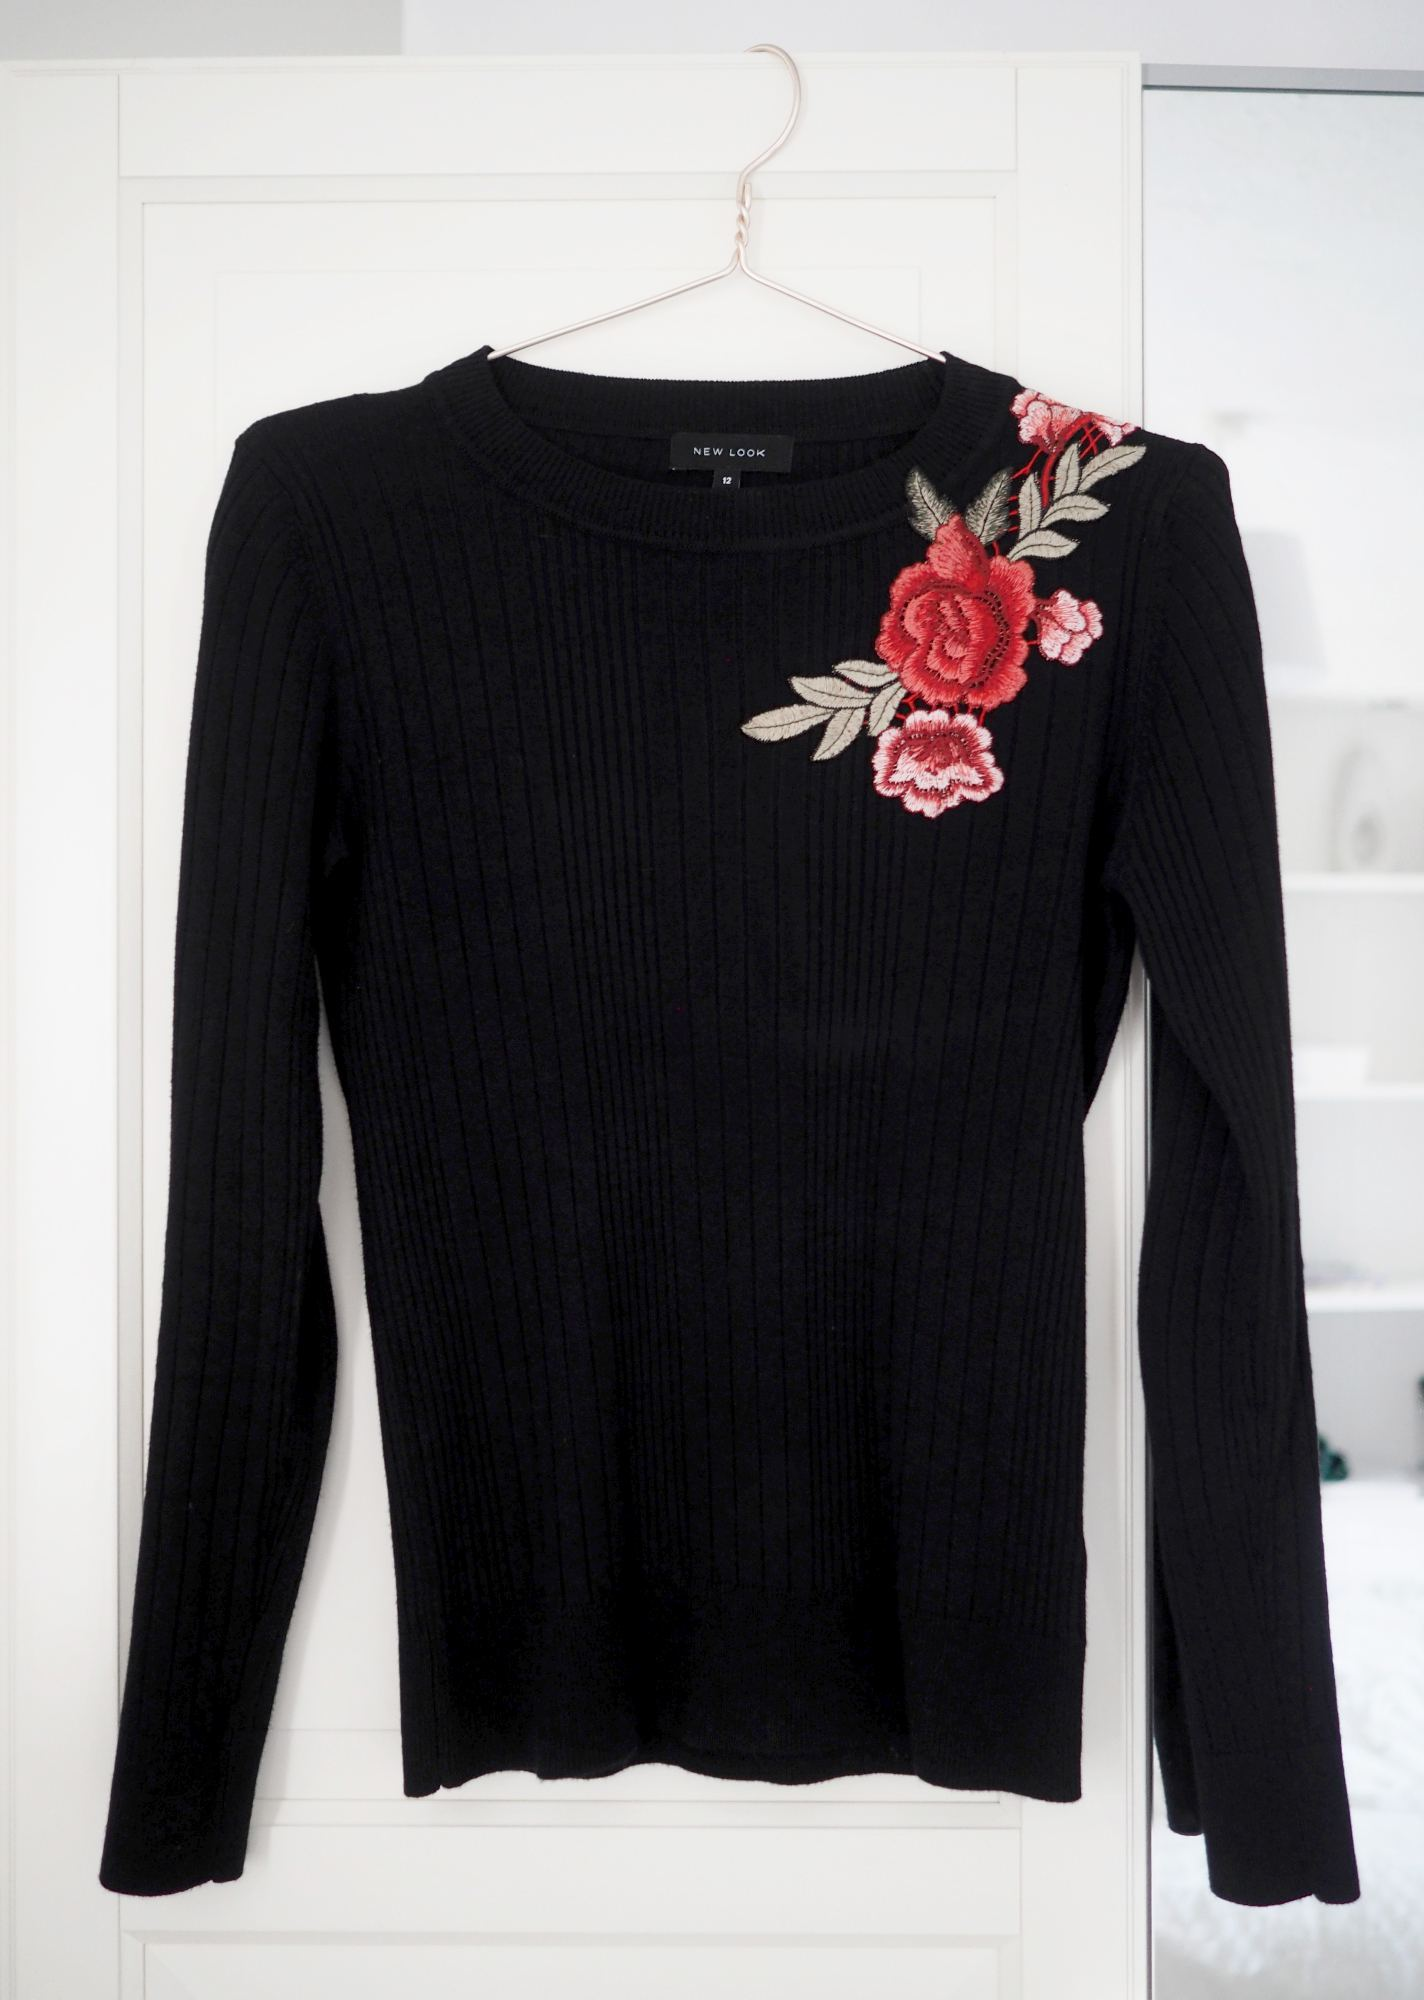 embroidered top DIY